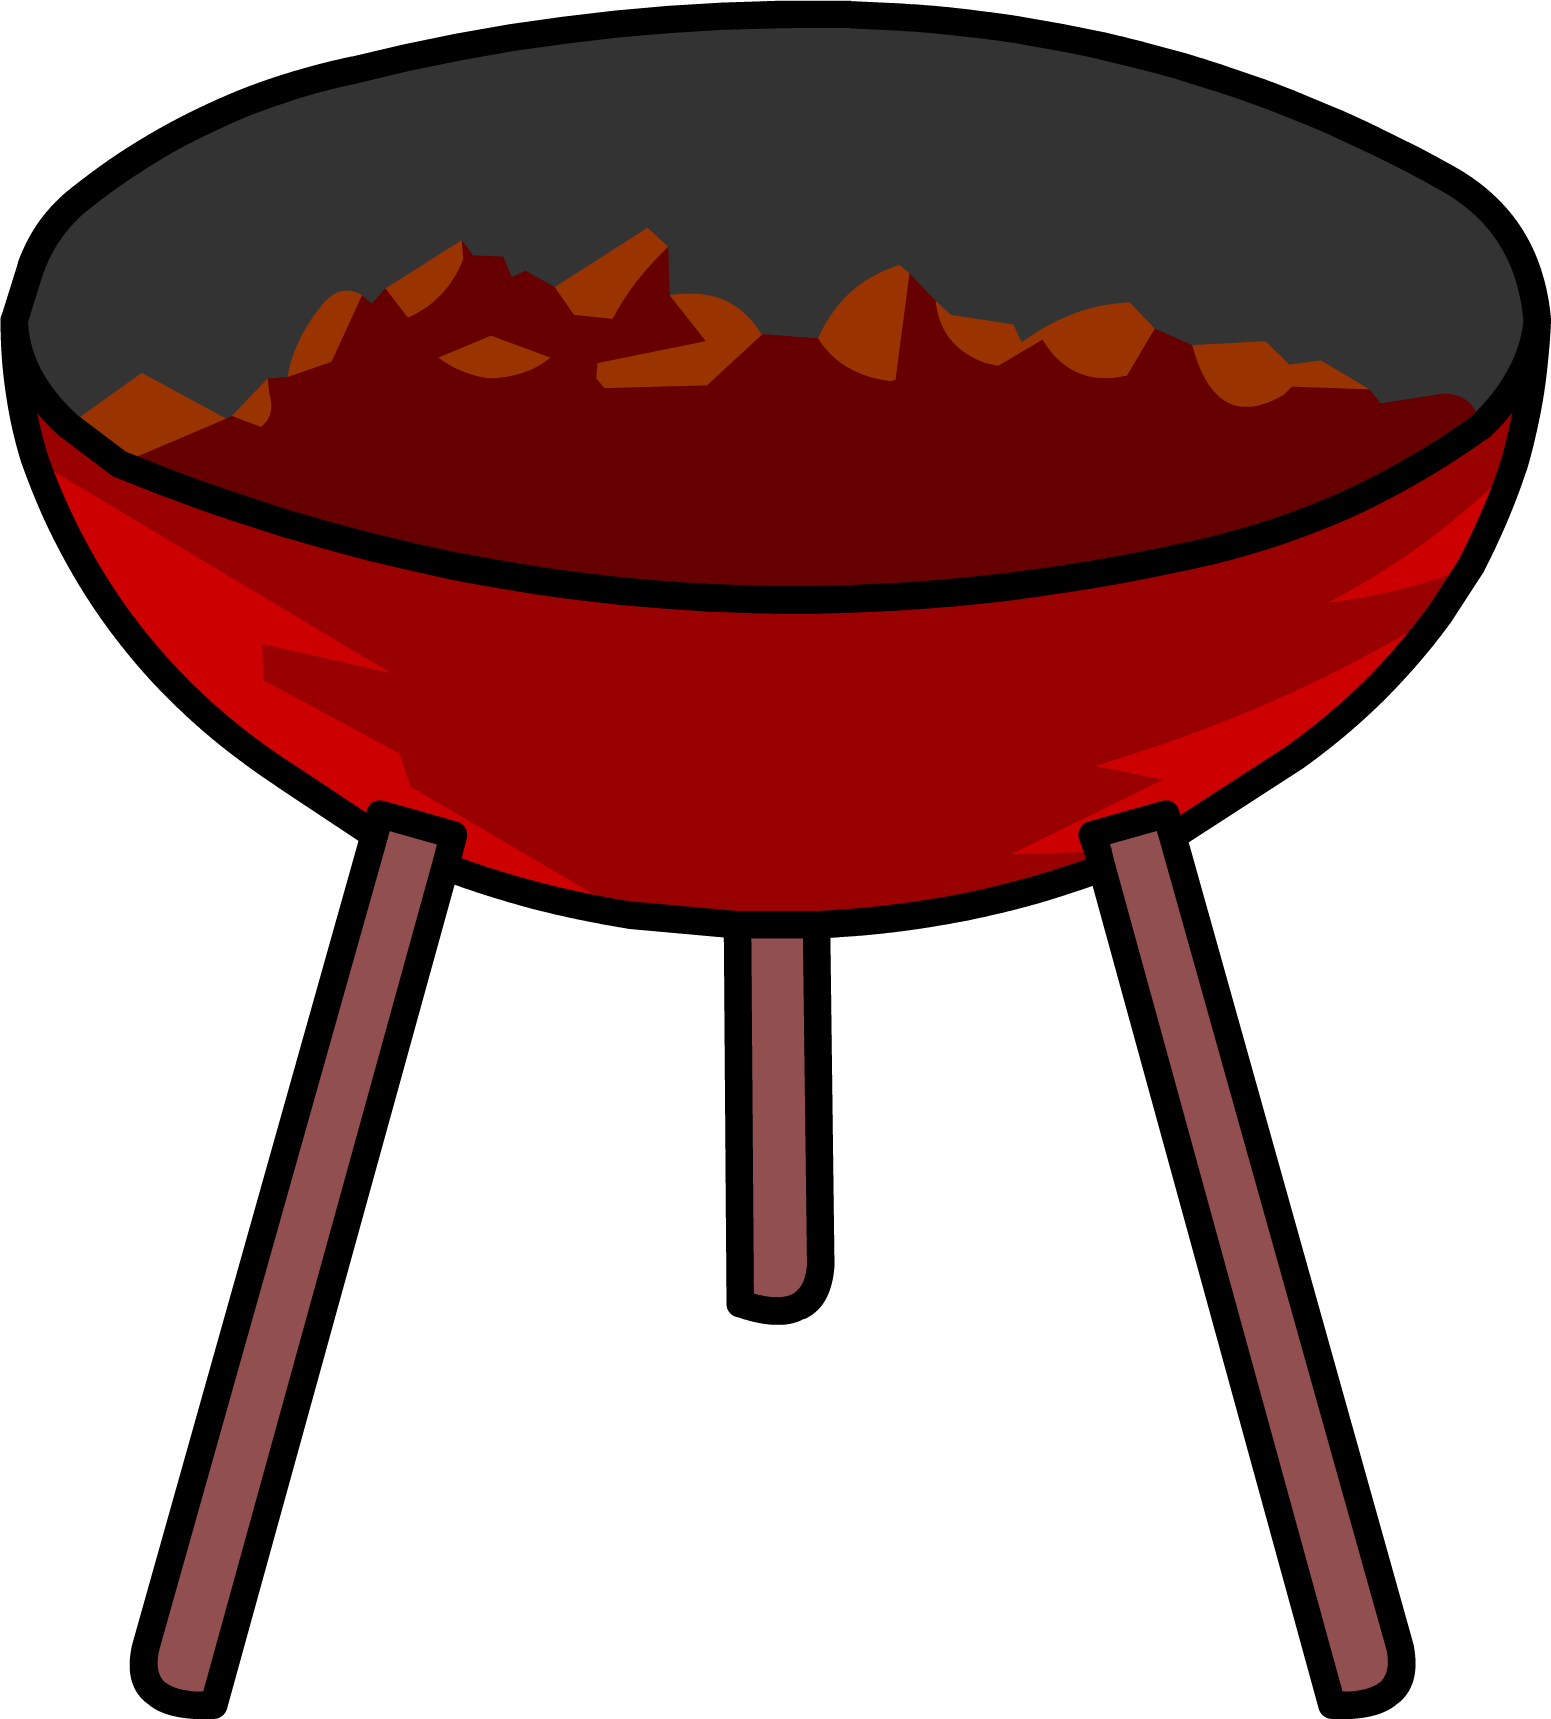 Image - Barbecue.PNG | Club Penguin Wiki | Fandom powered ...